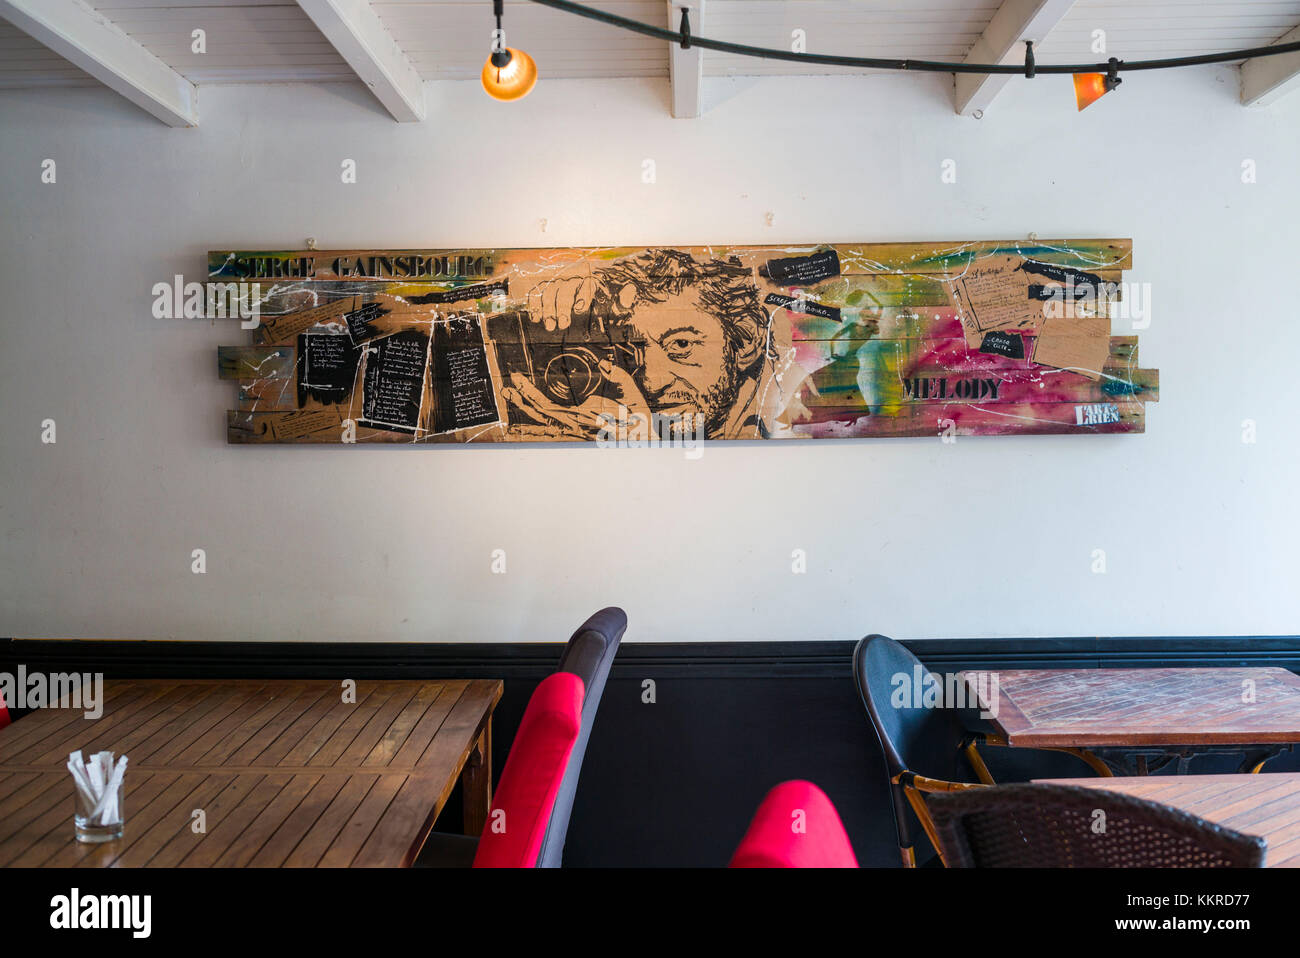 French West Indies St-Barthelemy St-Jean cafe wall art of & Cafe Wall Art Stock Photos u0026 Cafe Wall Art Stock Images - Alamy